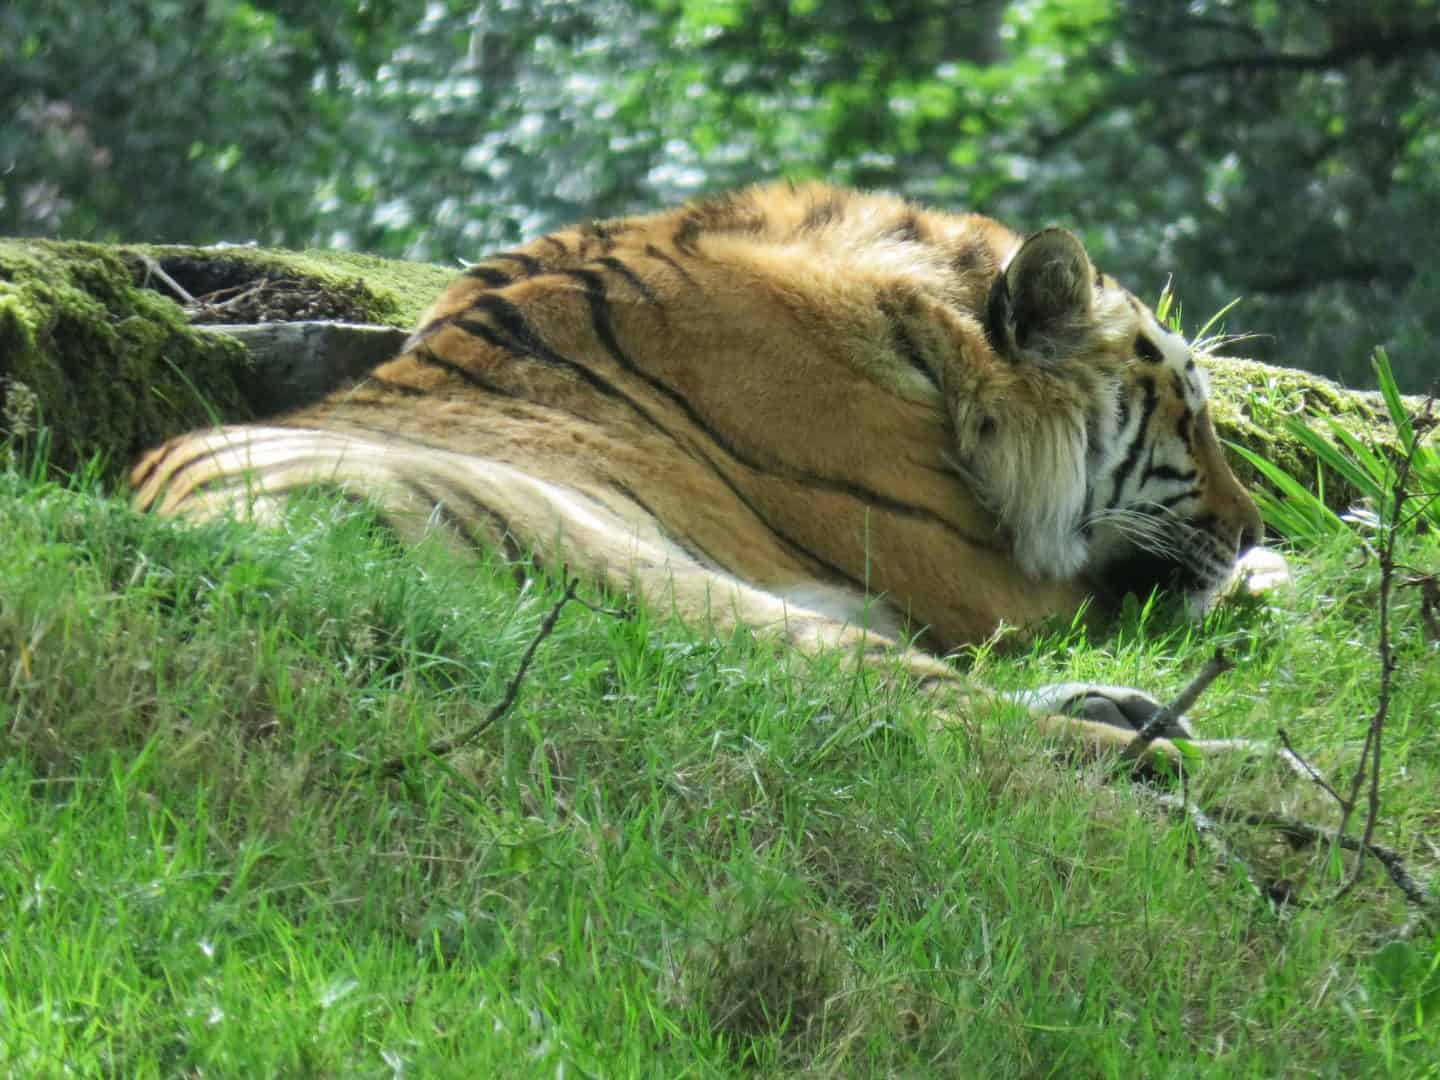 Tiger dozing in the shade at Longleat Safari Park